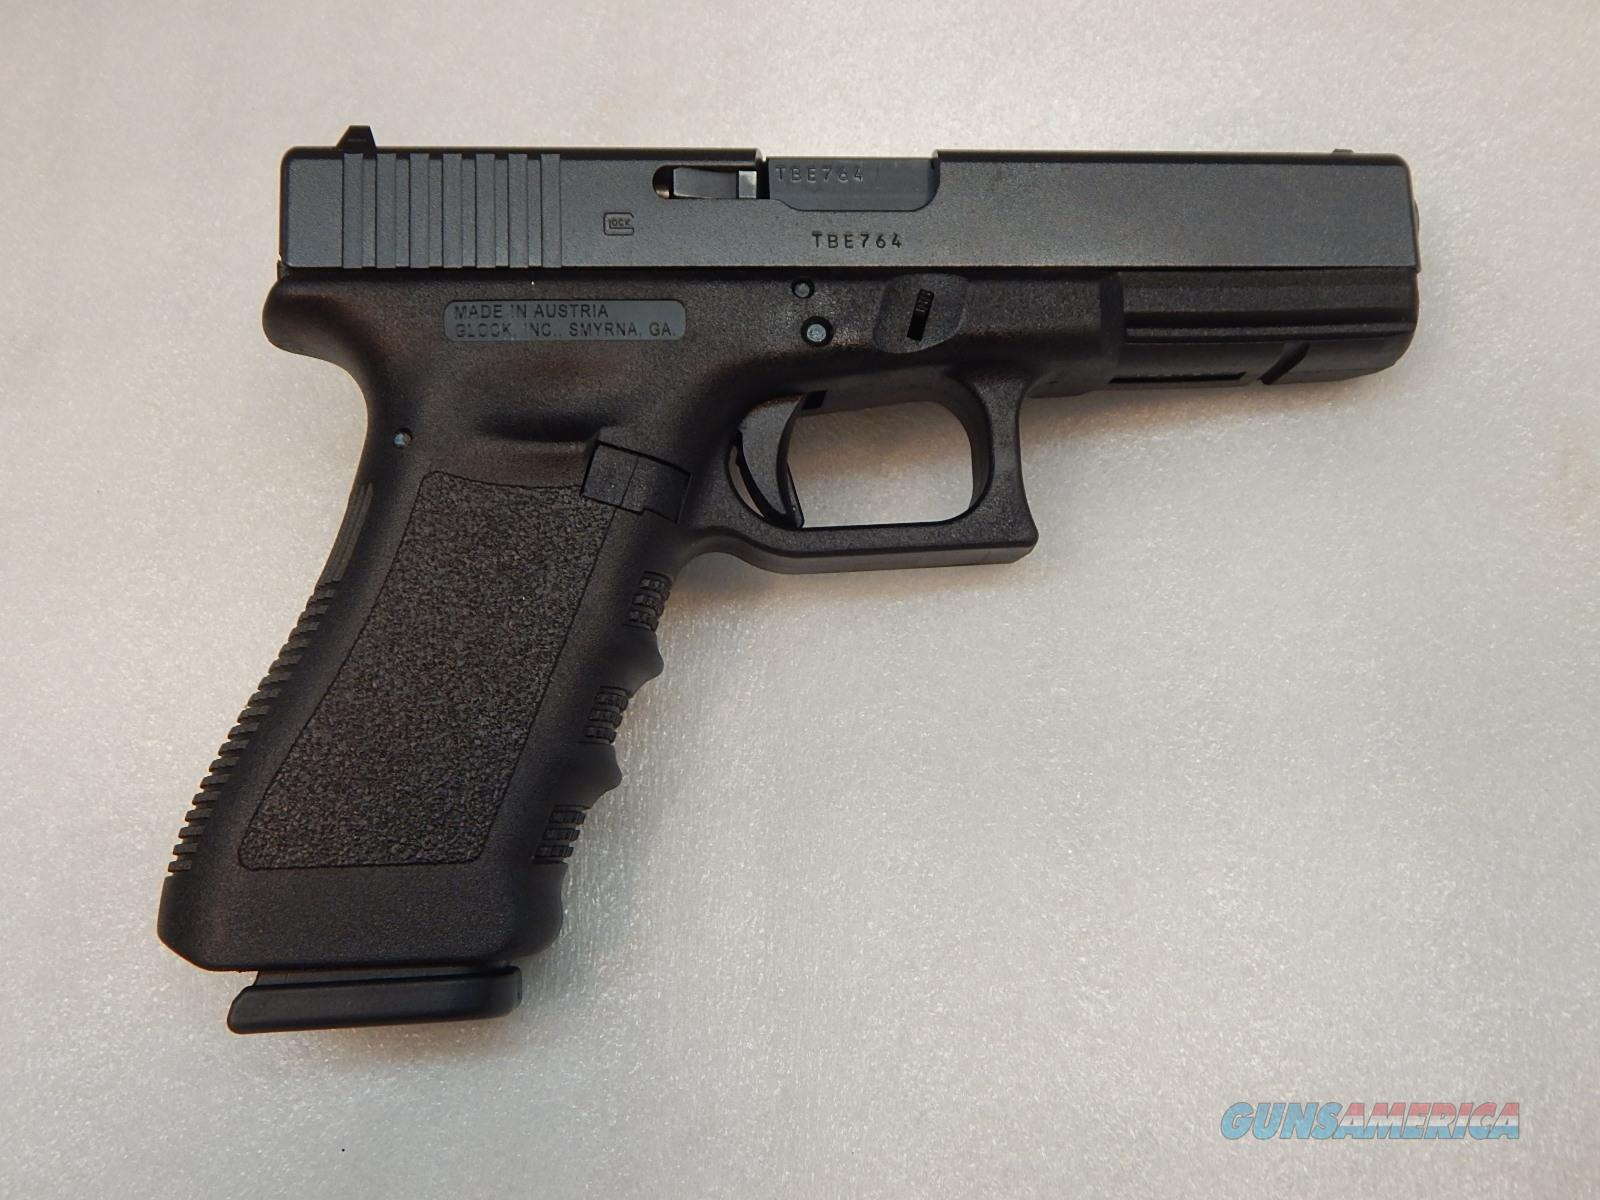 Glock 17 - Gen 3 - 2 Mags - Excellent Condition  Guns > Pistols > Glock Pistols > 17